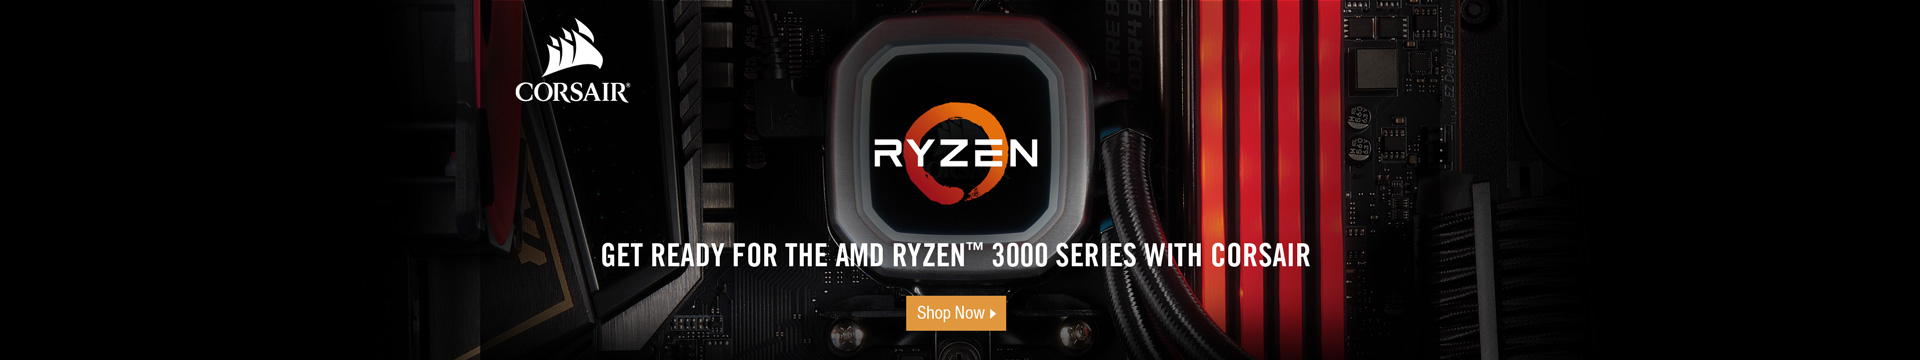 GET READY FOR THE AMD RYZEN(TM) 3000 SERIES WITH CORSAIR